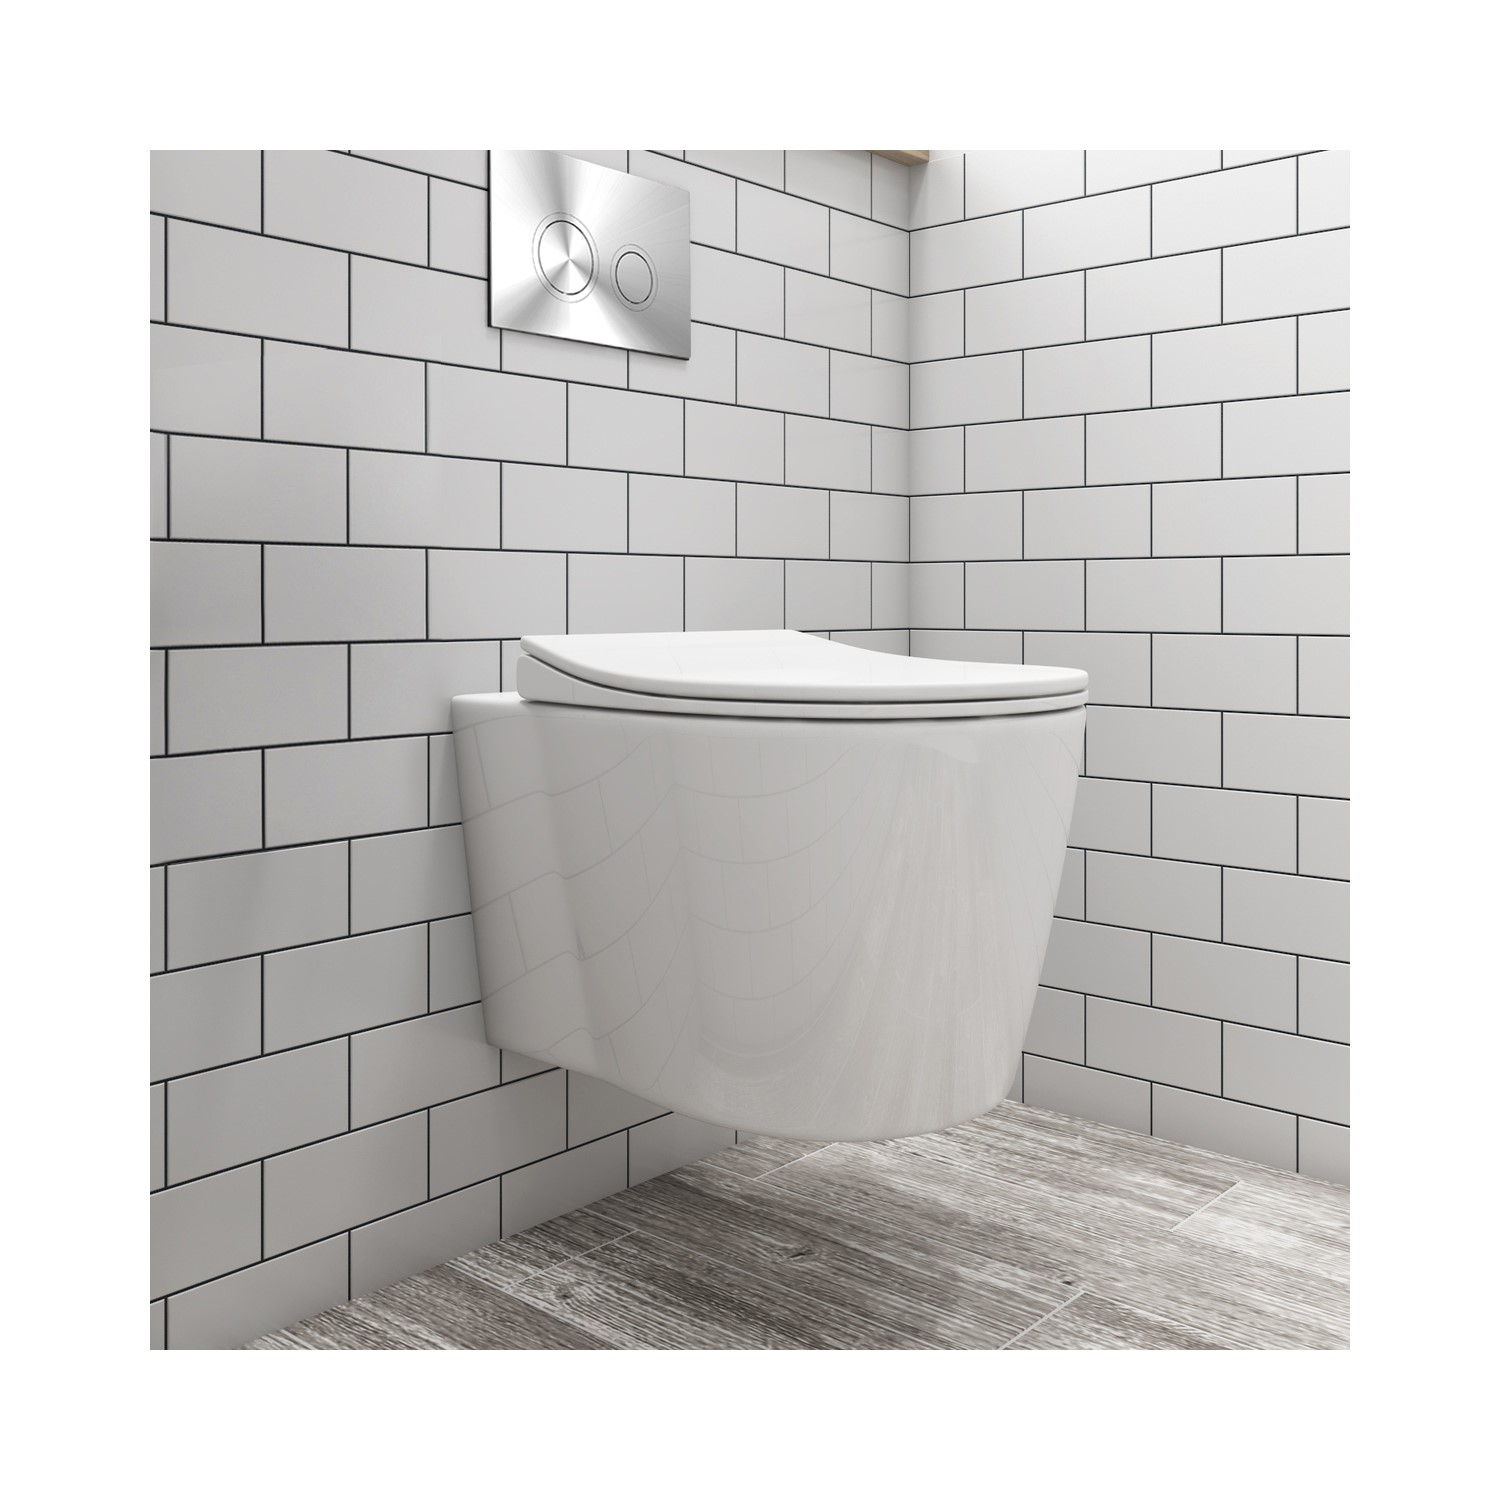 Bath & WC Wall Hung Toilet and Soft Close Seatwith Chrome Flush Plate 1160mm Frame and Cistern - Alcor